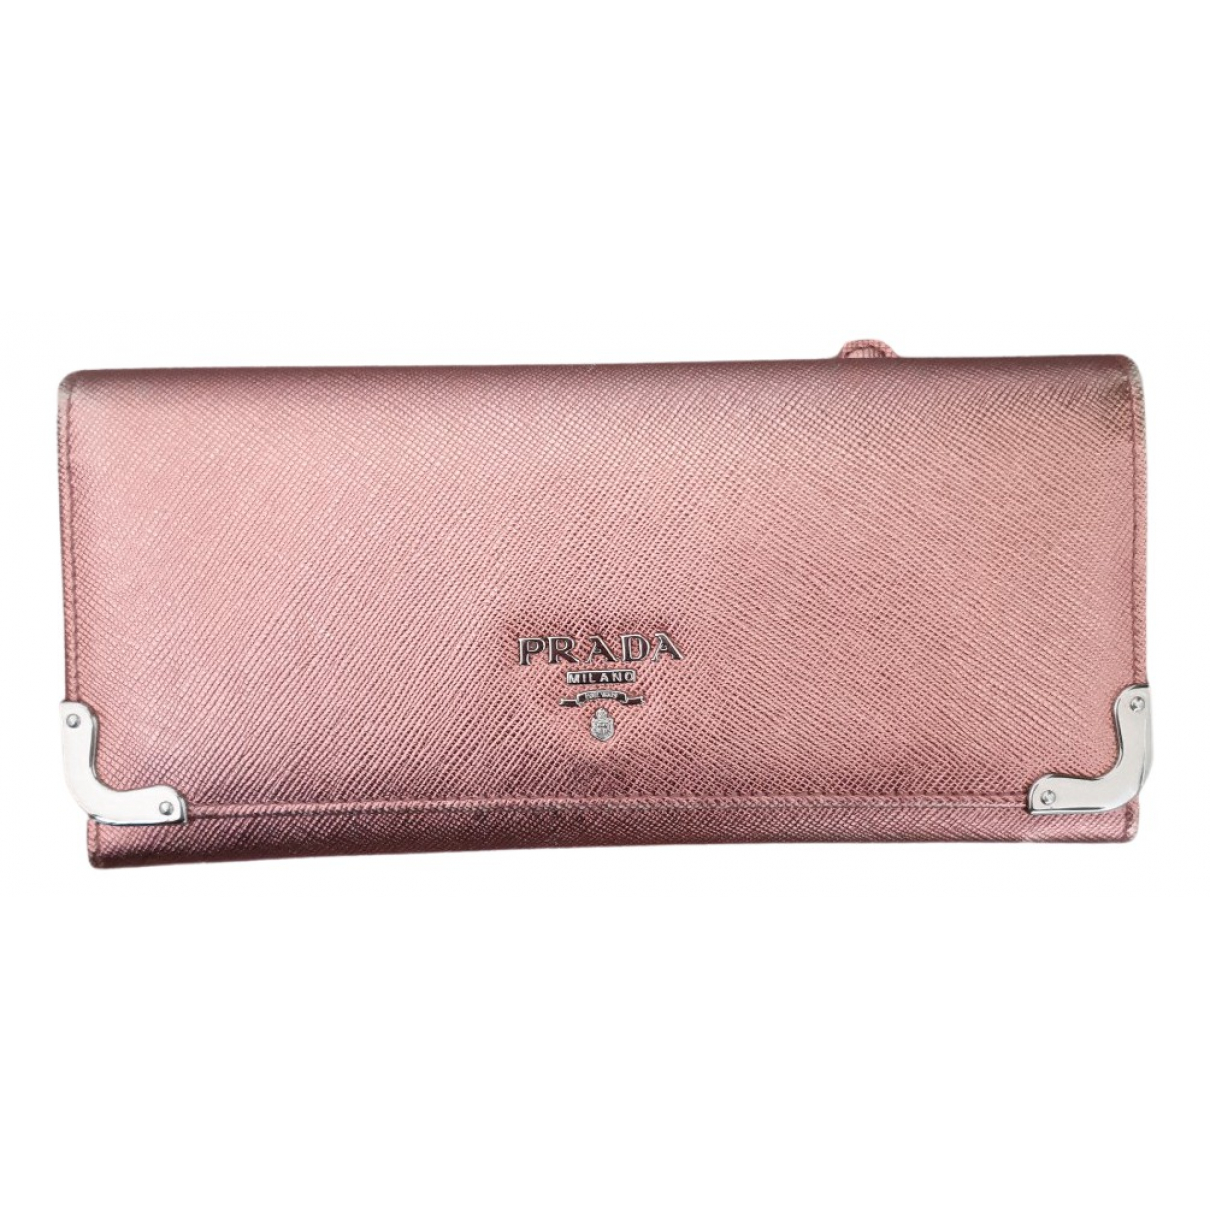 Prada N Metallic Leather wallet for Women N